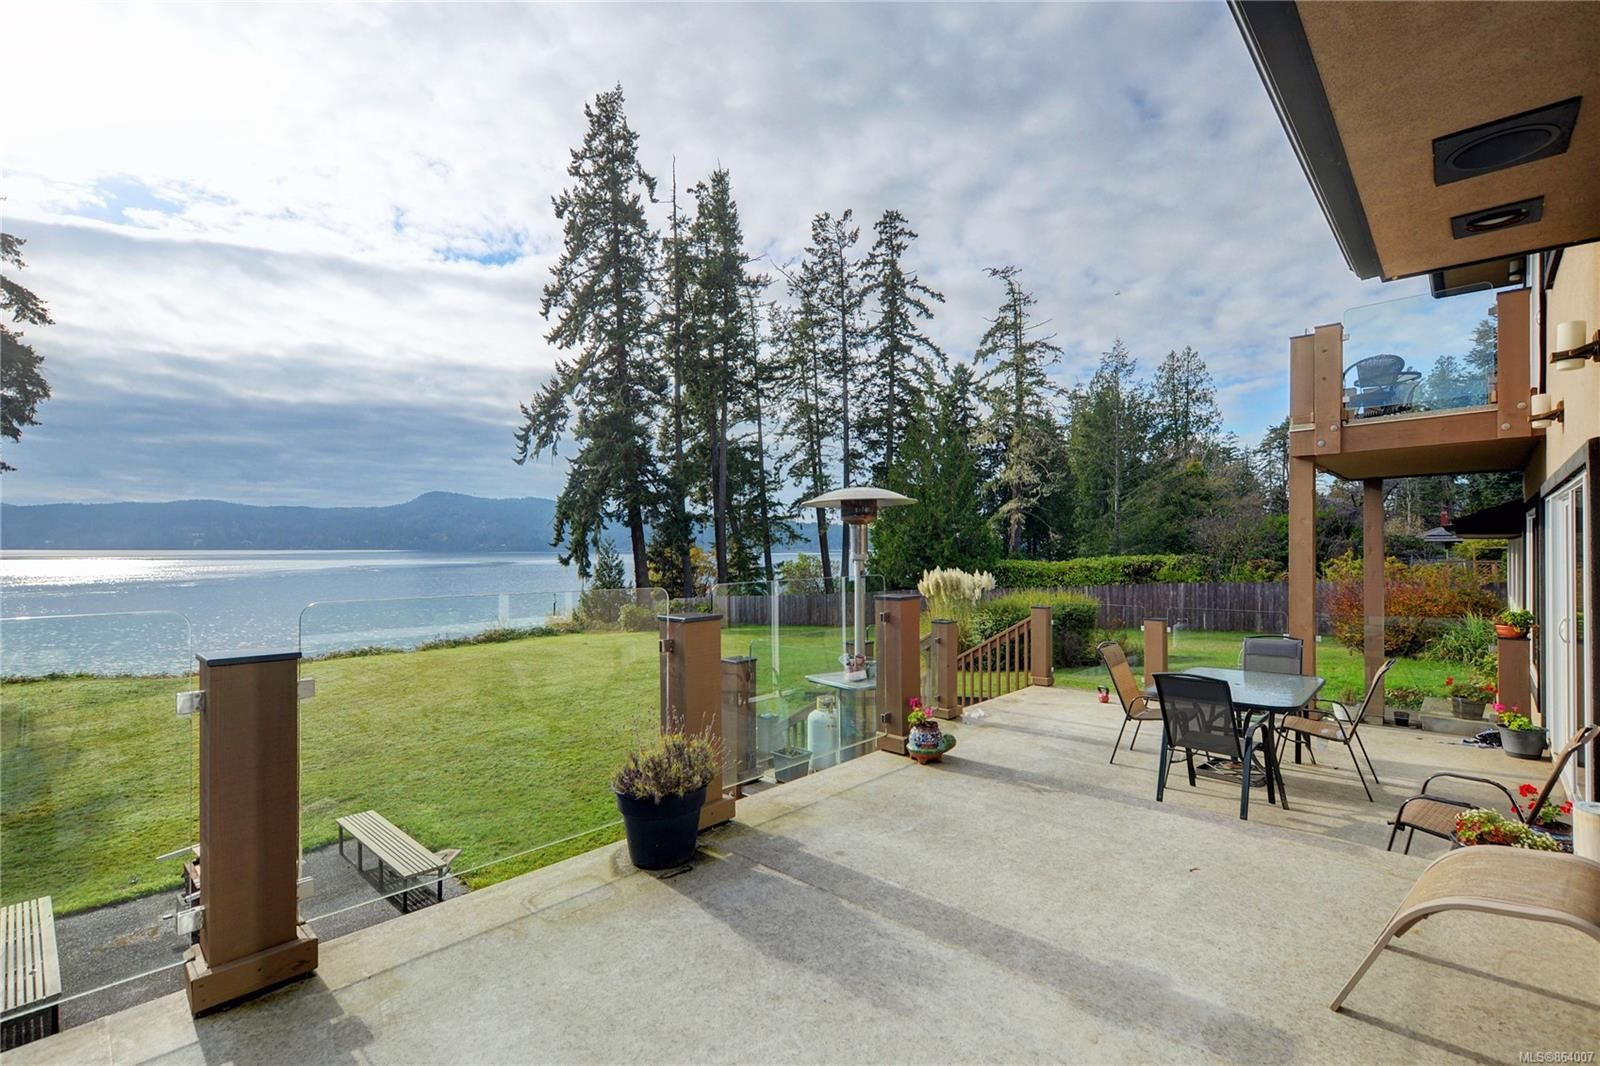 Photo 28: Photos: 5697 Sooke Rd in : Sk Saseenos House for sale (Sooke)  : MLS®# 864007